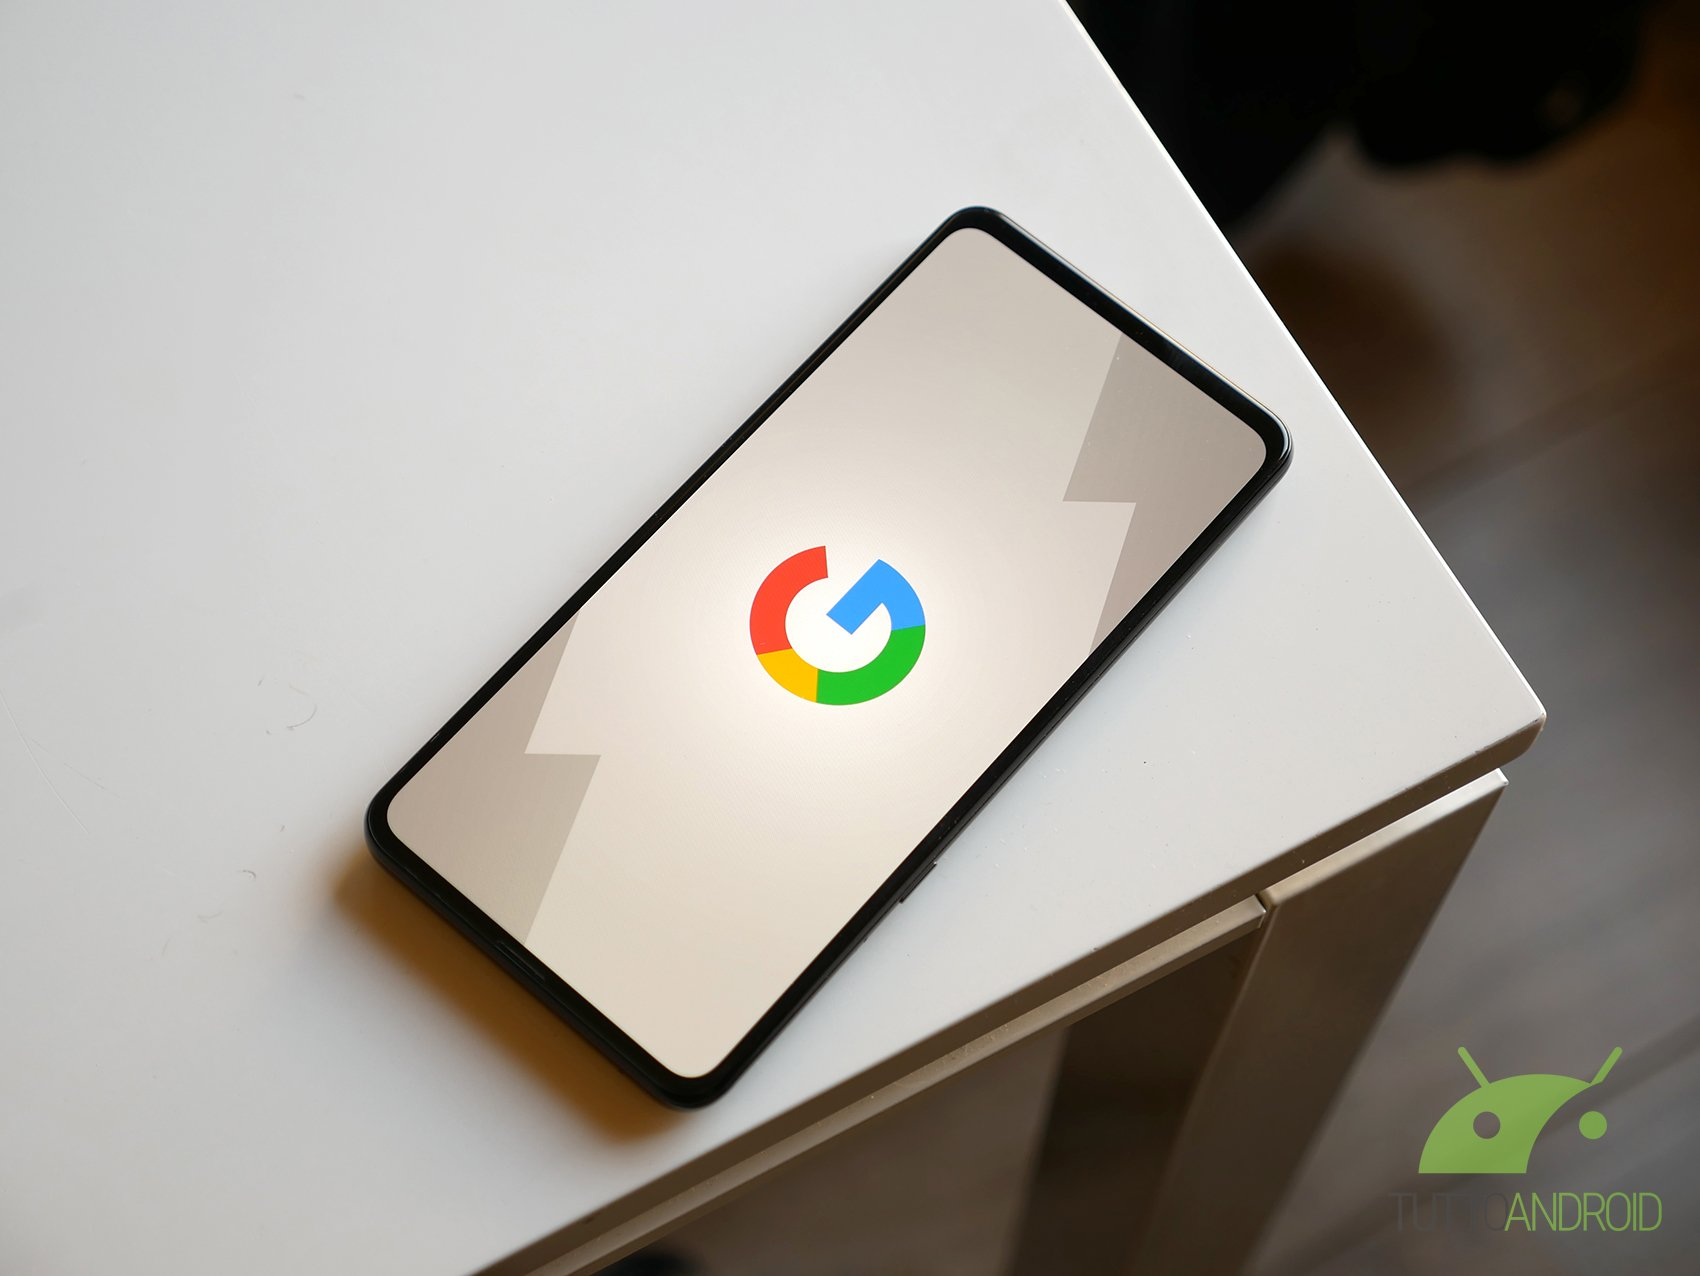 Google modifica privacy, dati cancellati dopo 18 mesi